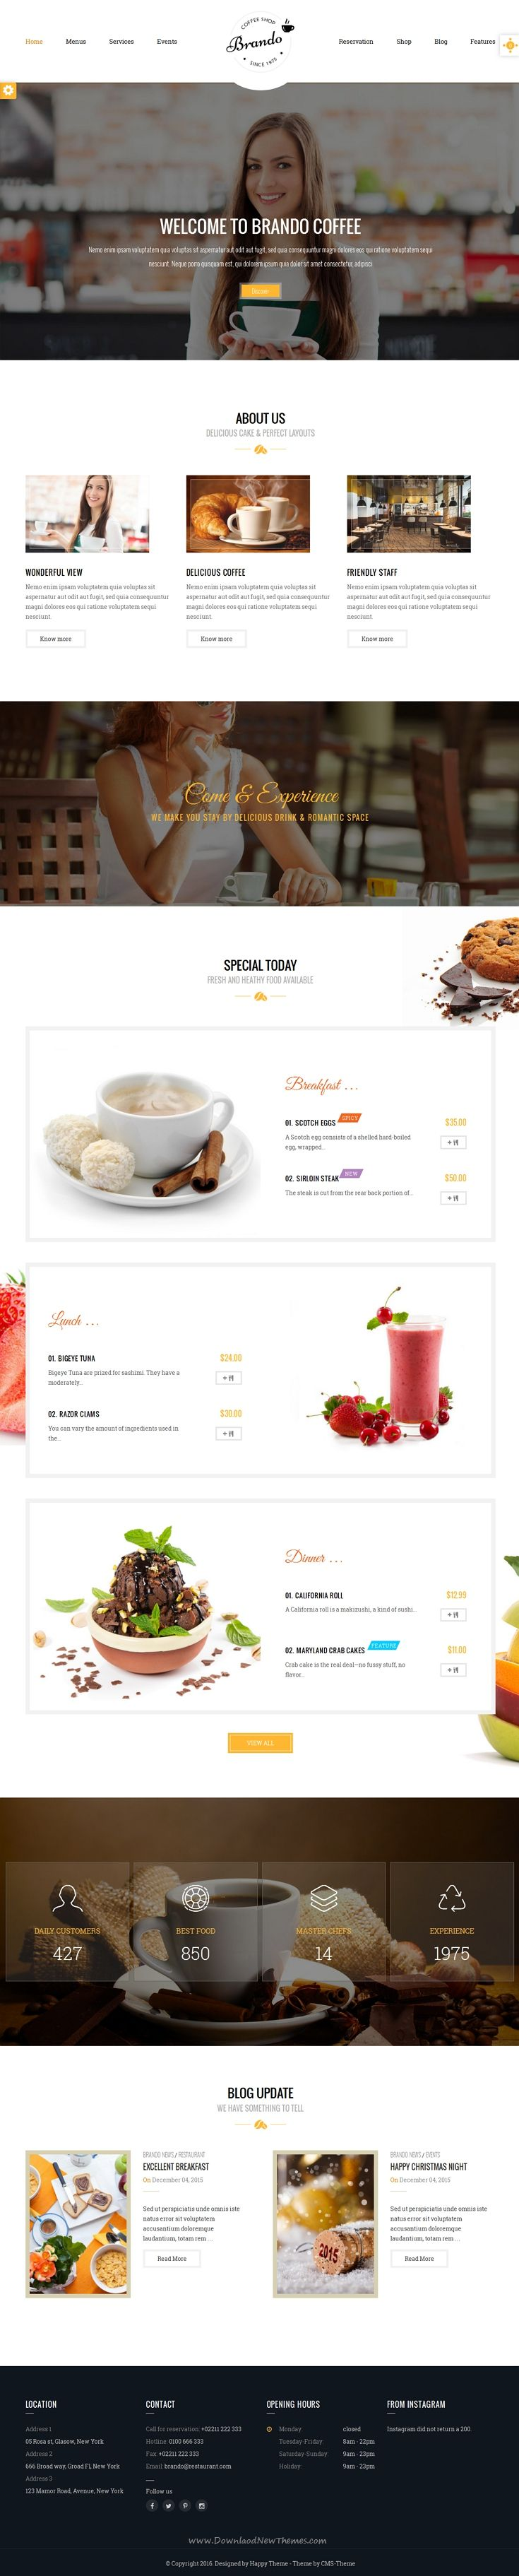 18 best Food & Drinks images on Pinterest | Bristol, Bucket hat and ...